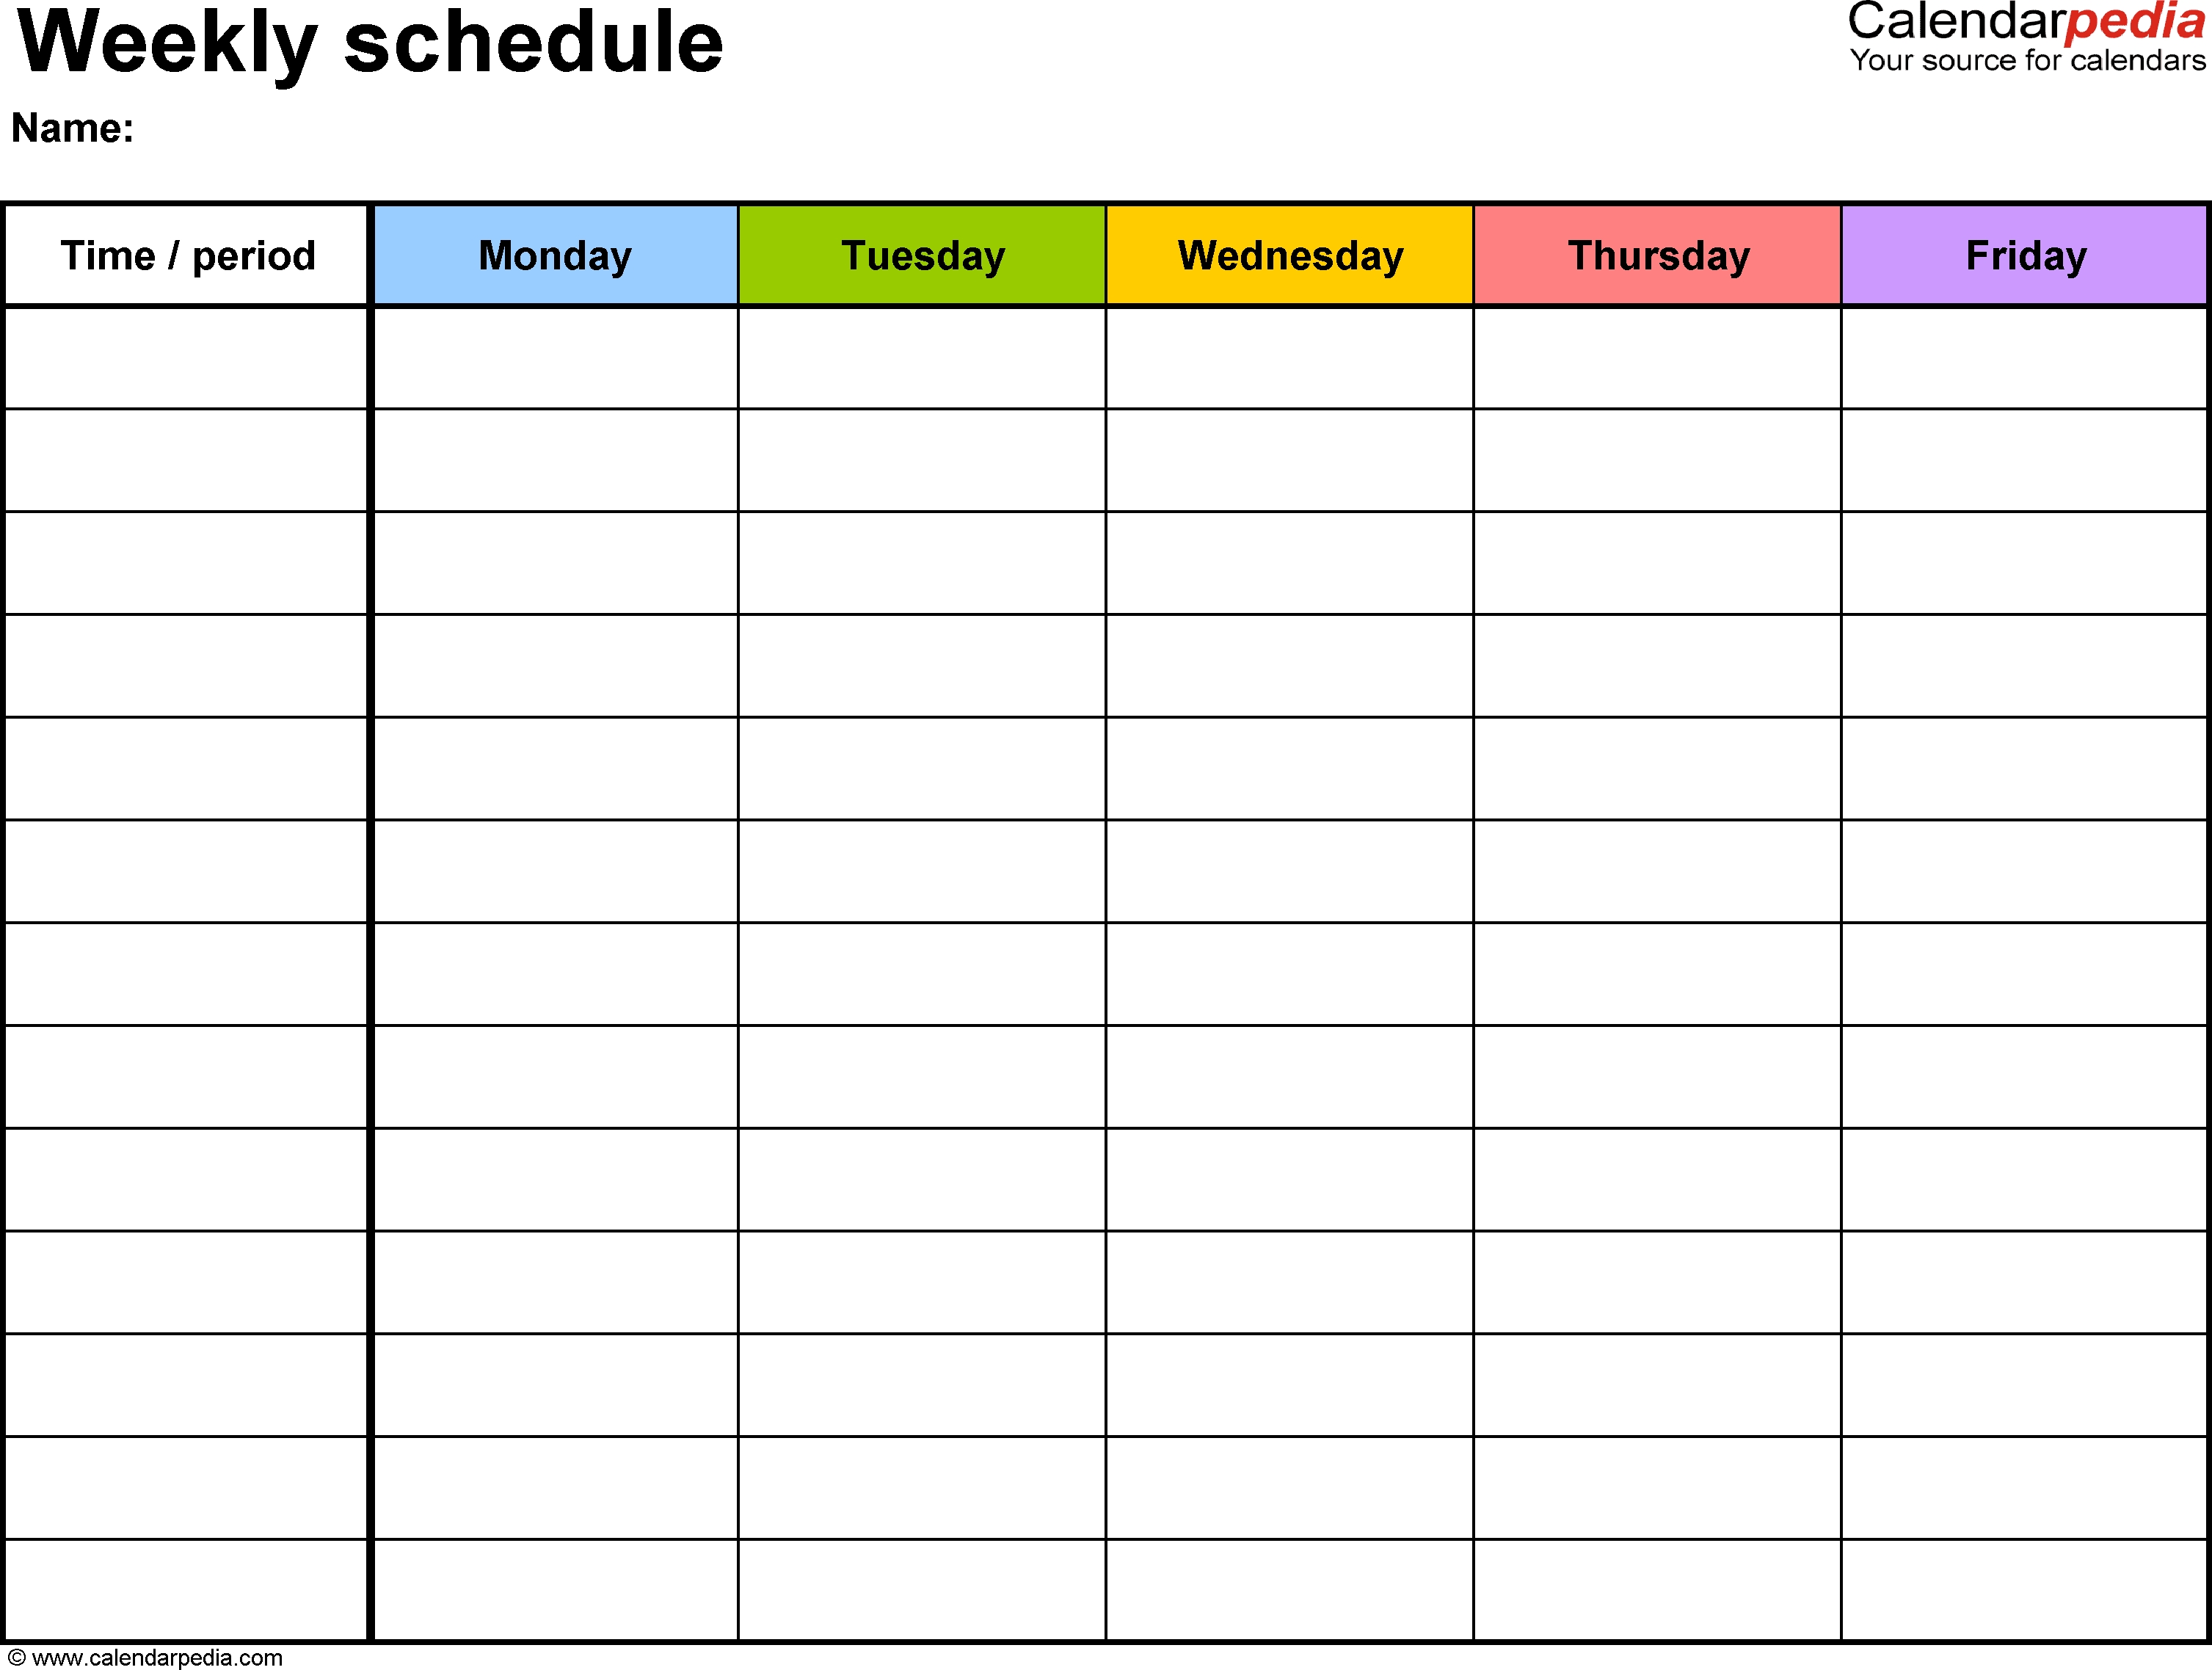 Free Weekly Schedule Templates For Word - 18 Templates  Schedule Of Activities Calendar Format